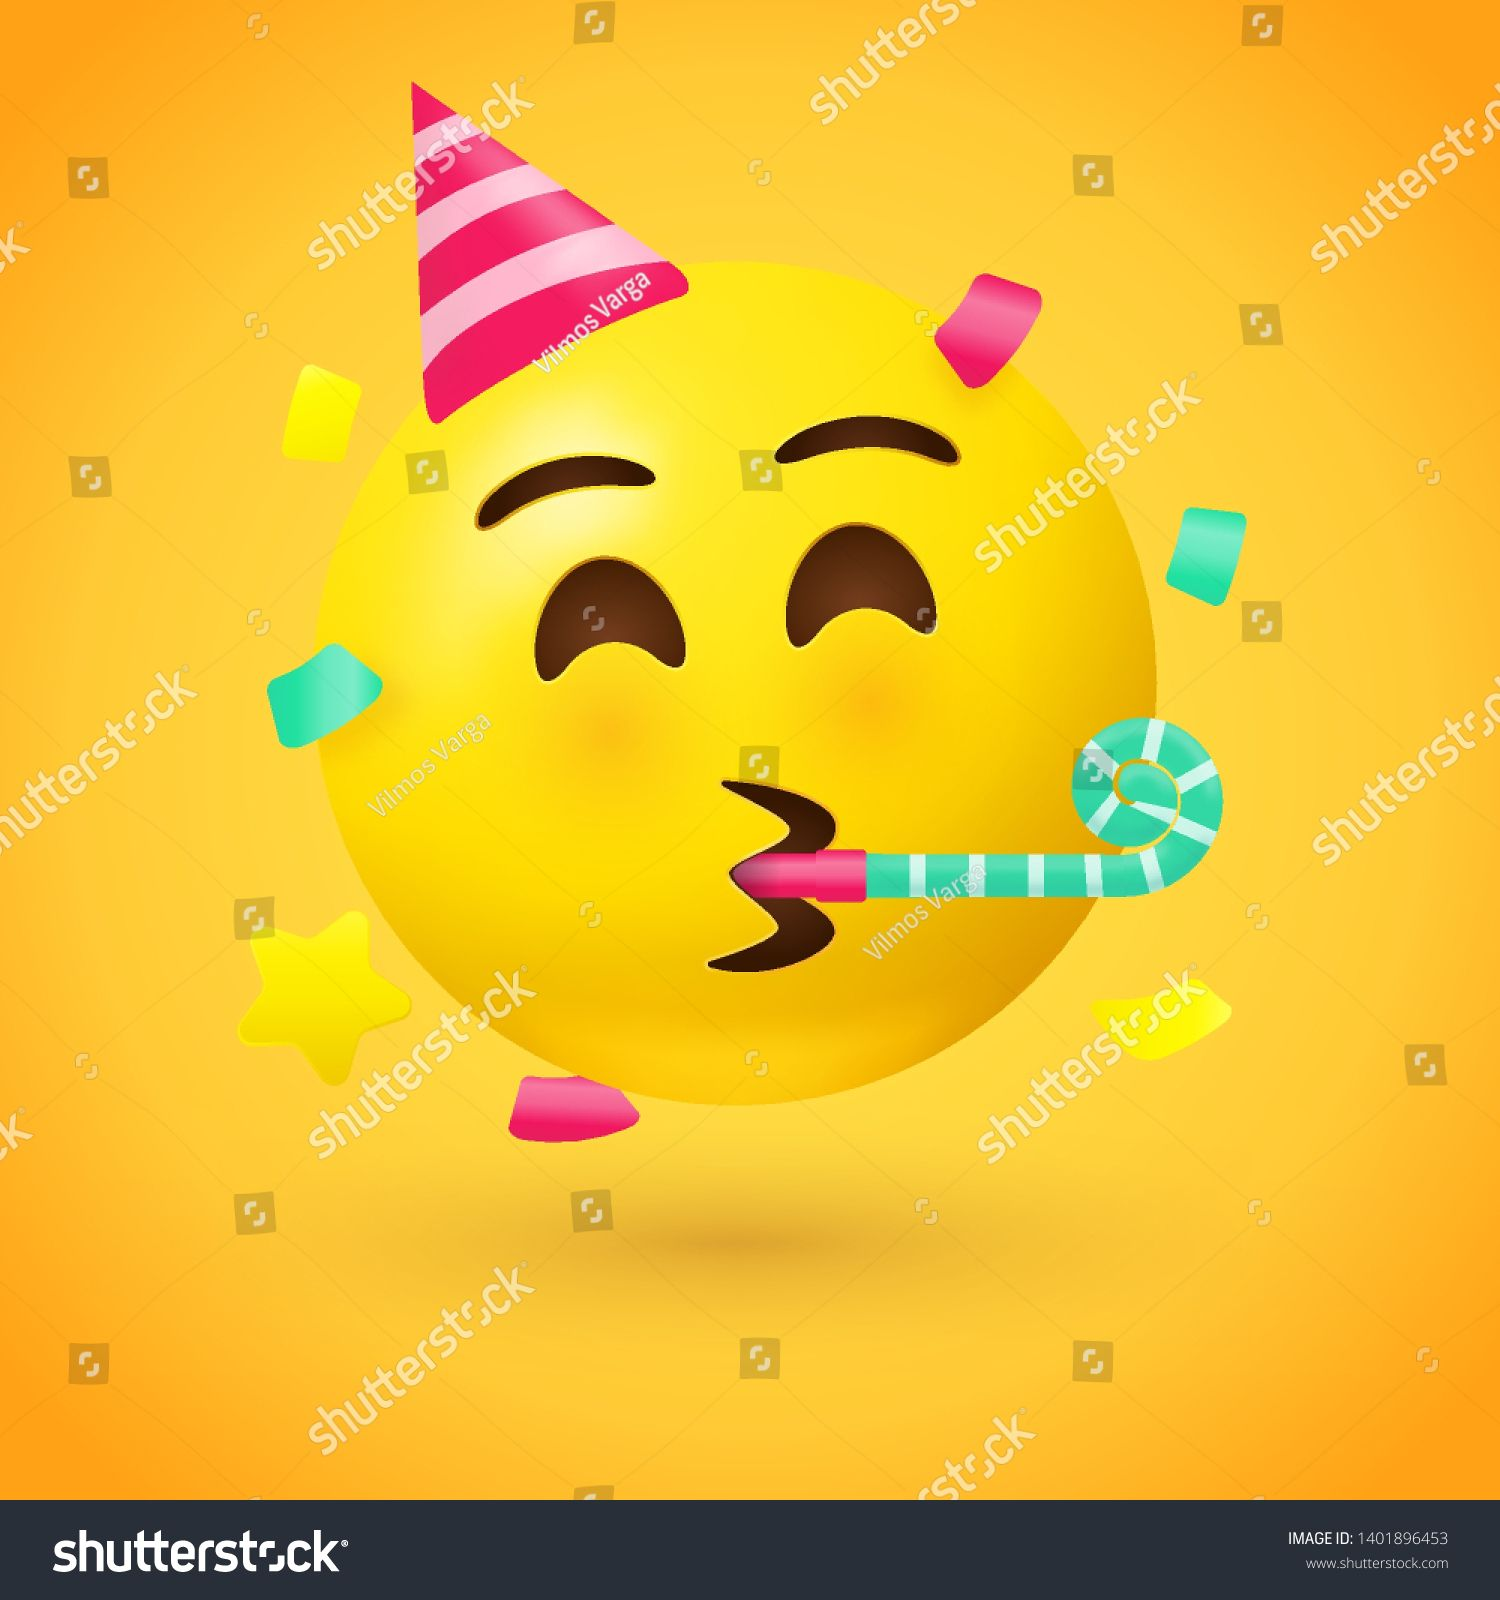 Party Face Emoji Yellow Face With A Party Hat Blowing A Party Horn As Confetti Floats Around Its Head Used For Cel Party Horns Horn Illustration Face Emoji